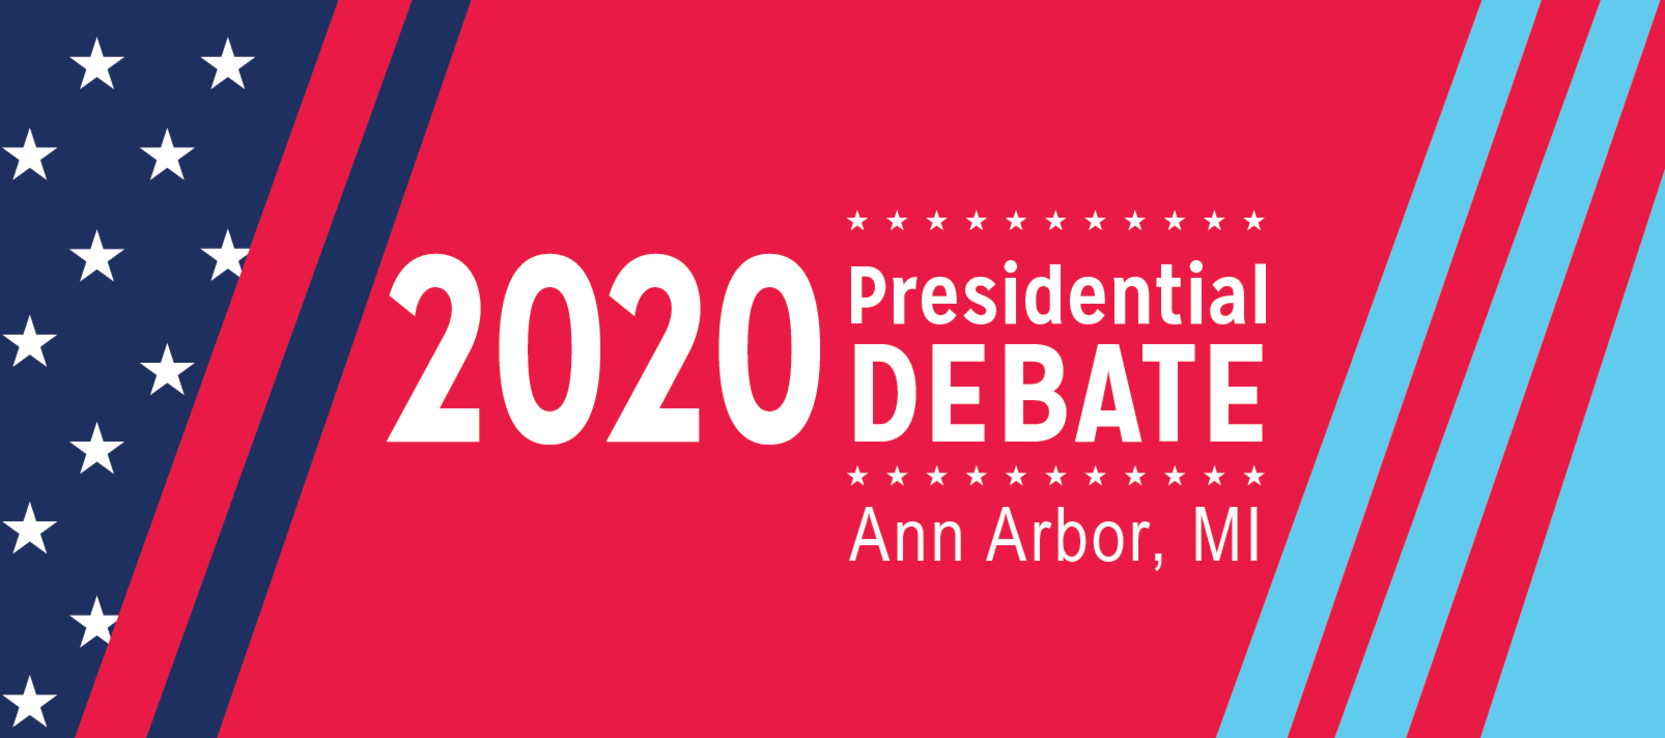 2020 Presidential Debate in Ann Arbor